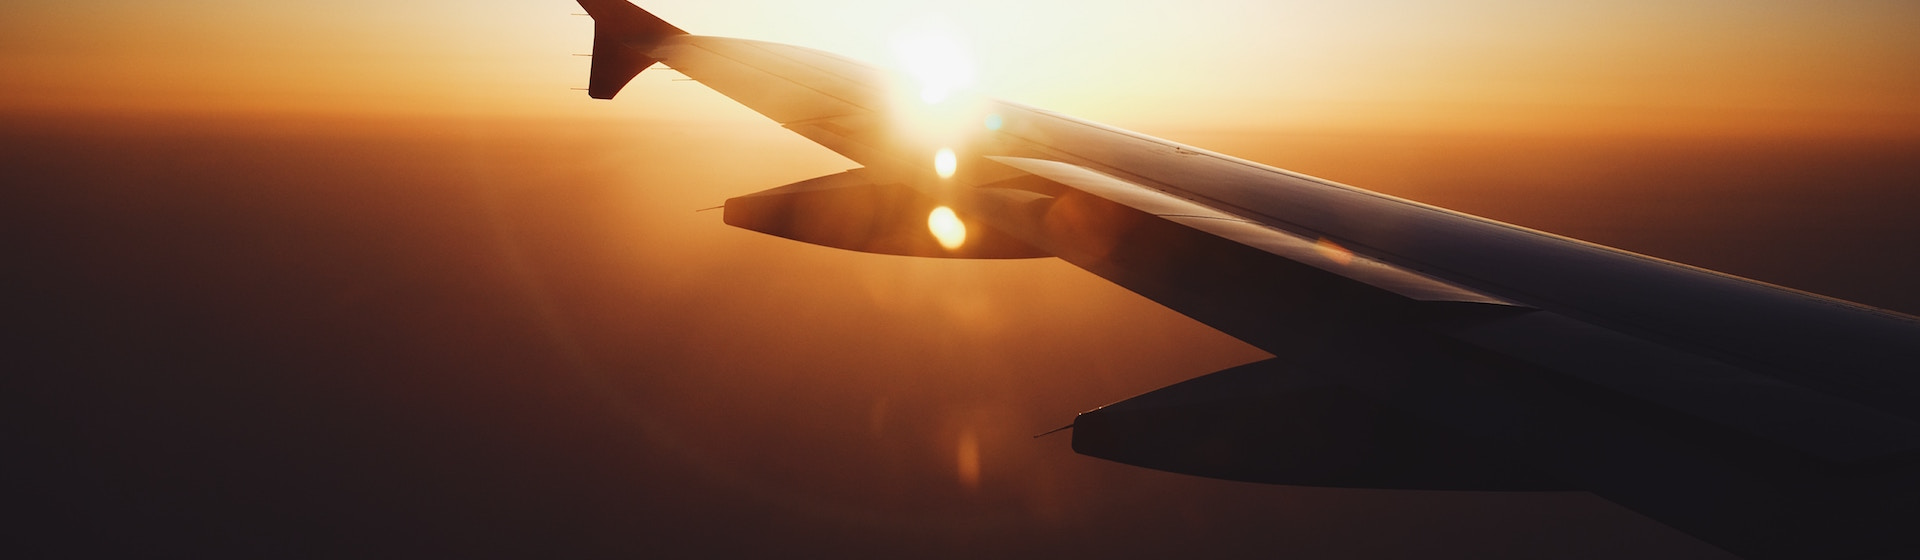 Airplane wing from window